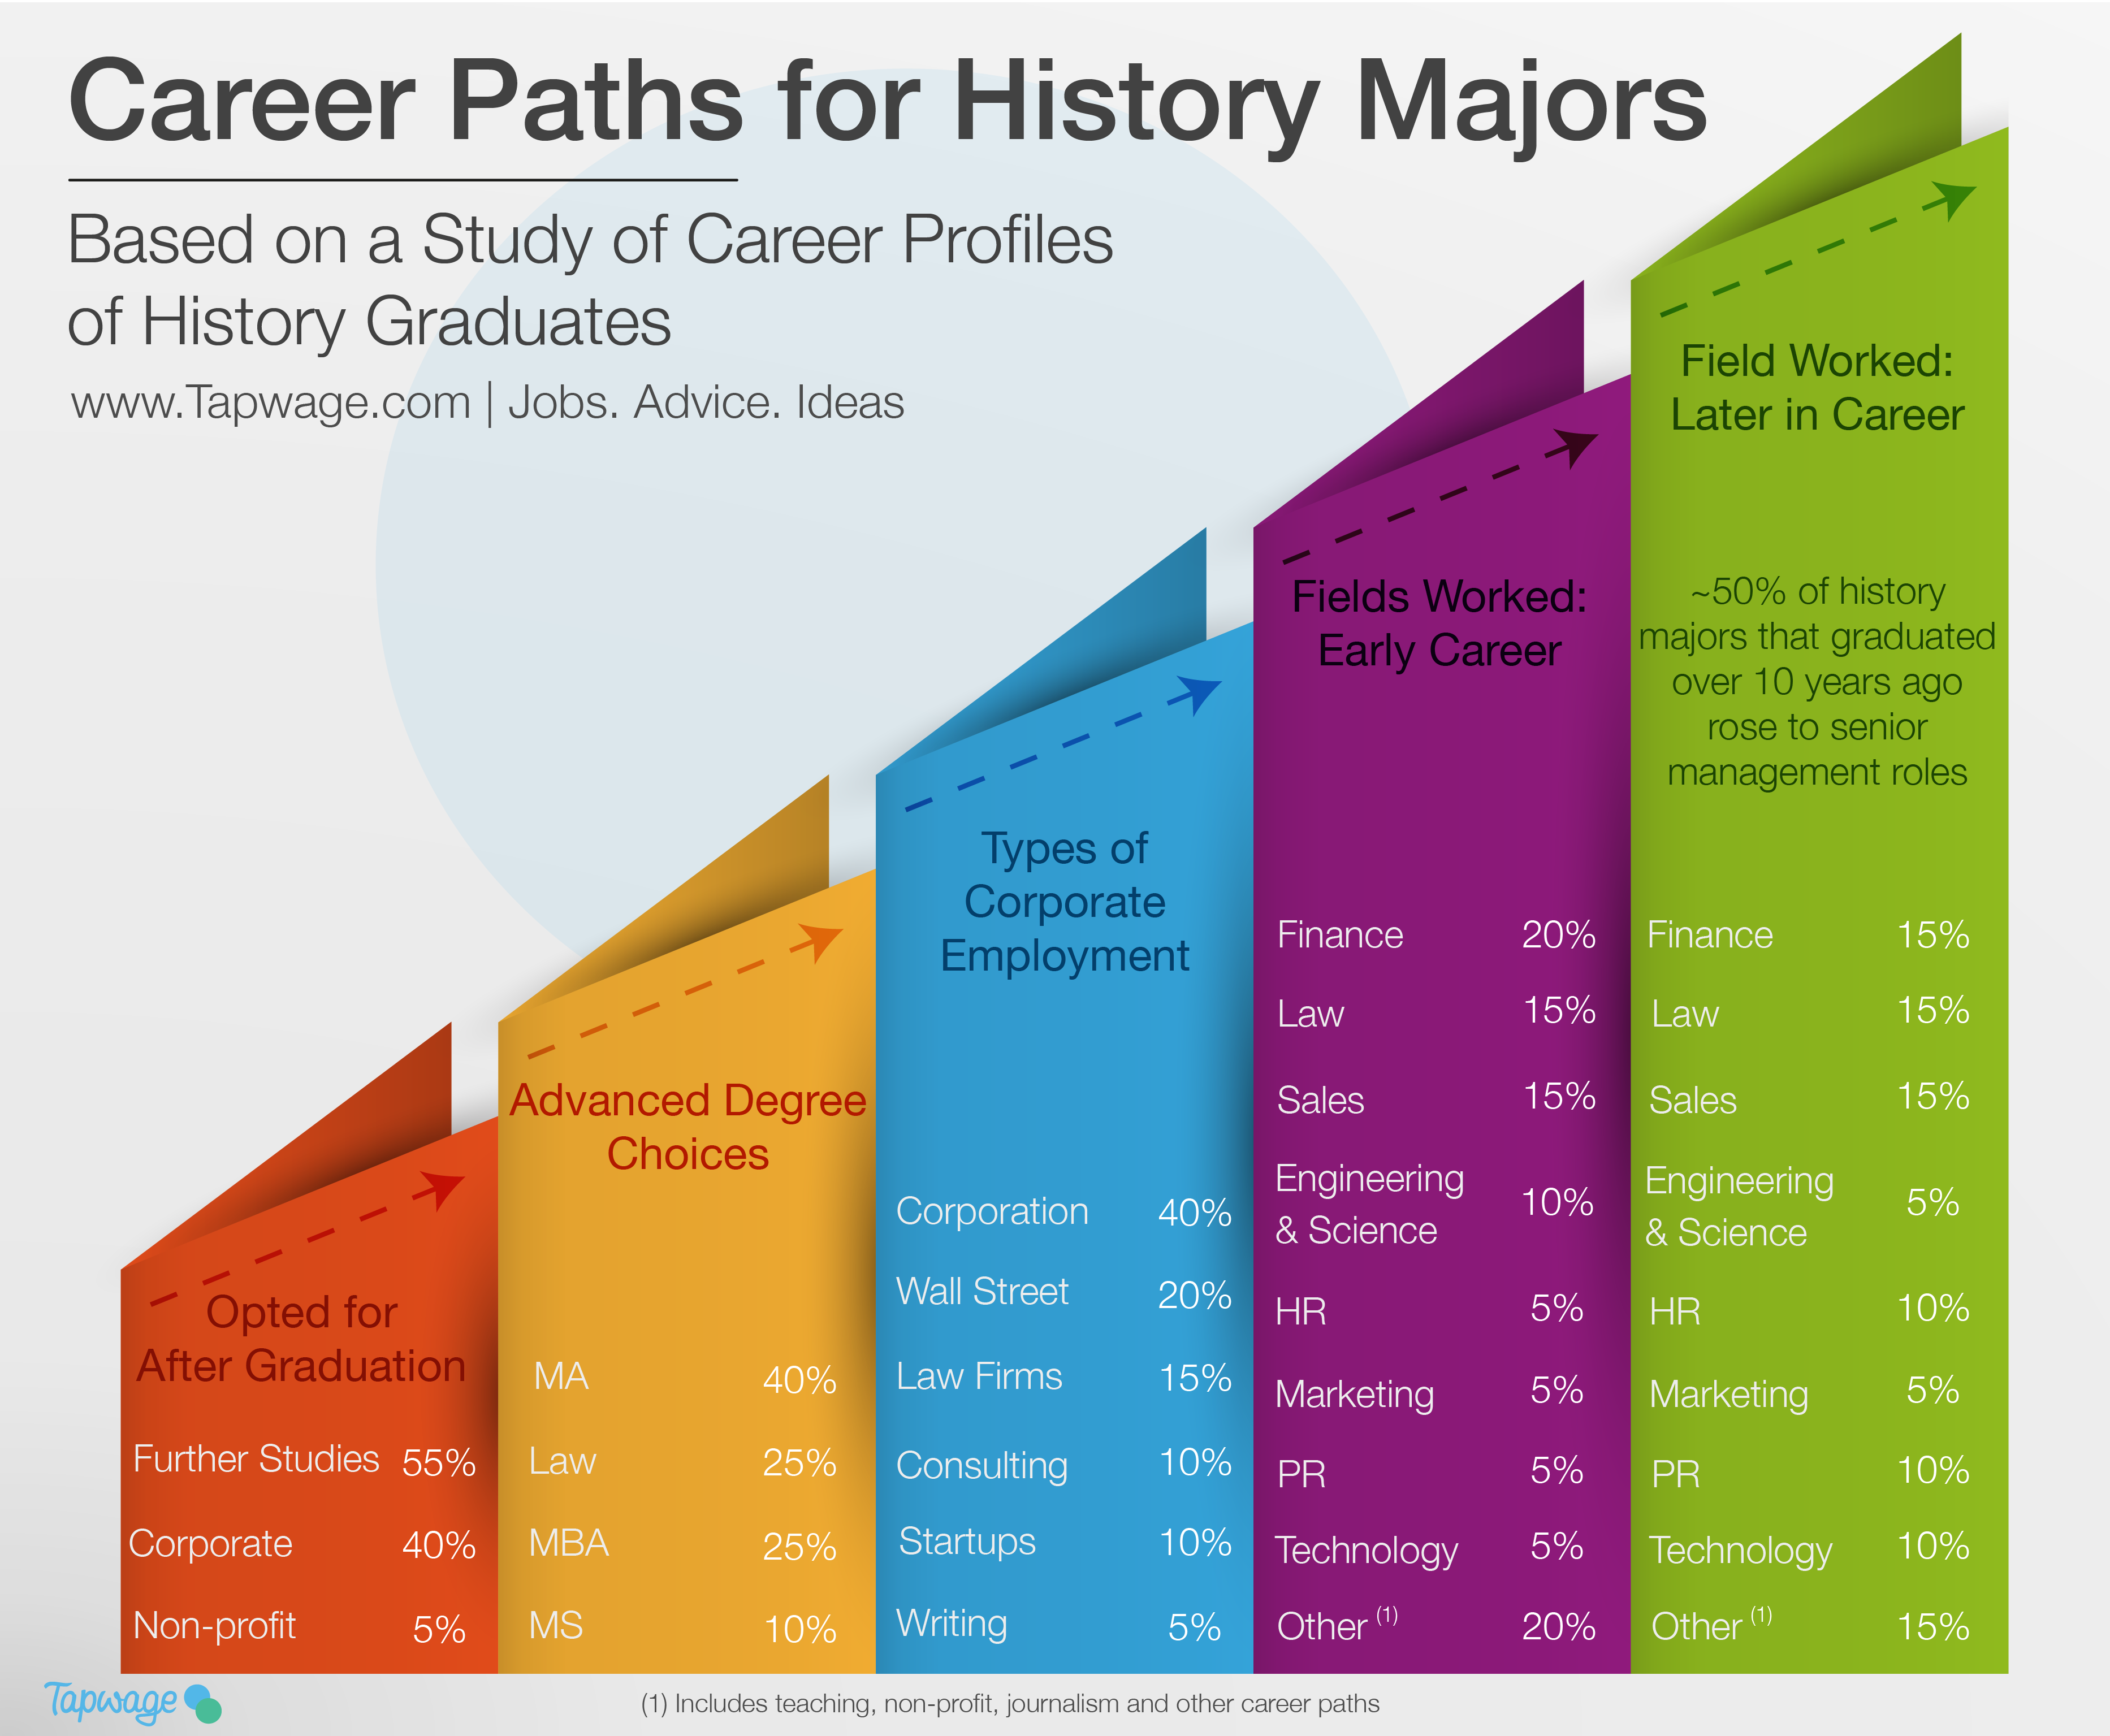 Career Paths for History Majors | Tapwage Job Search